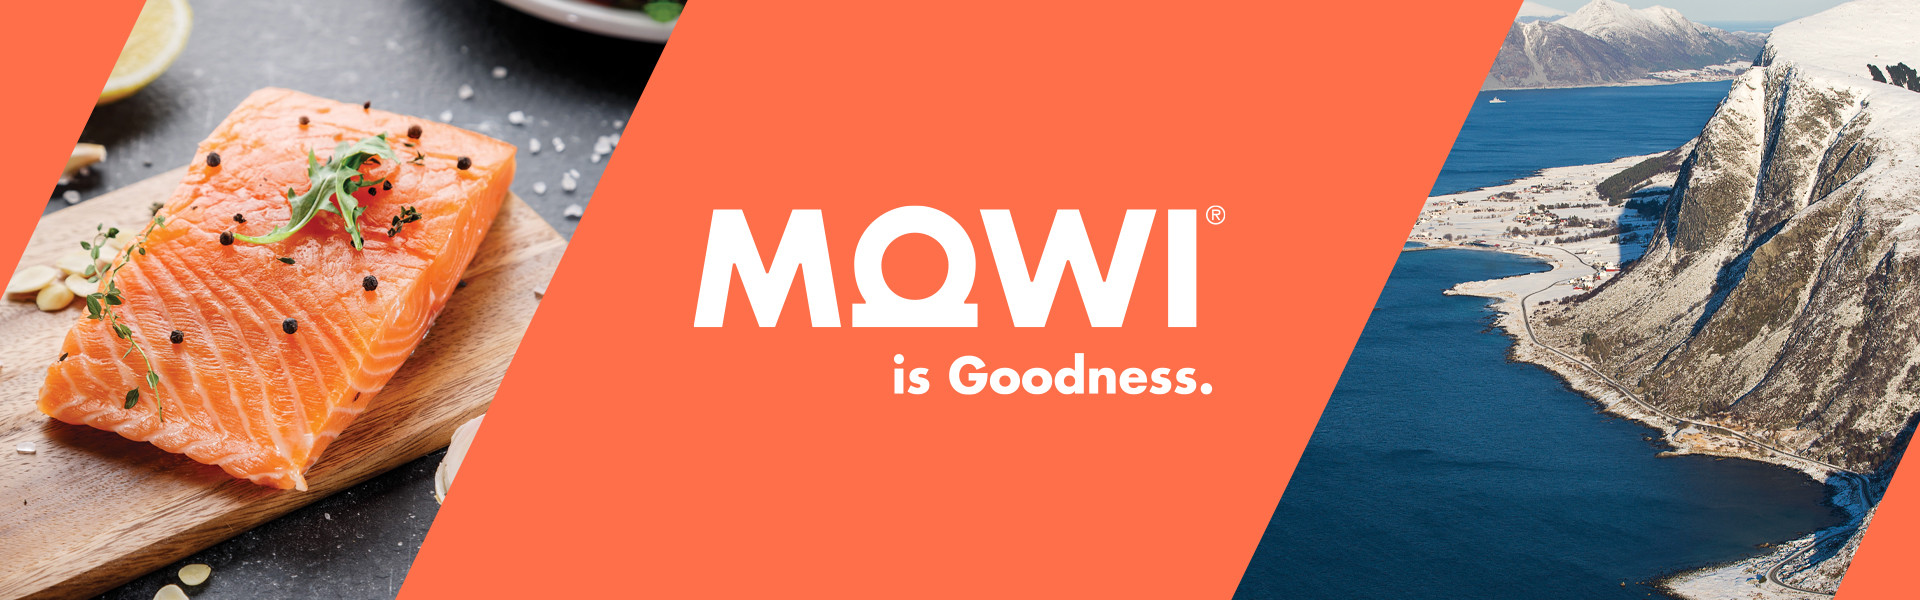 Mowi is Goodness